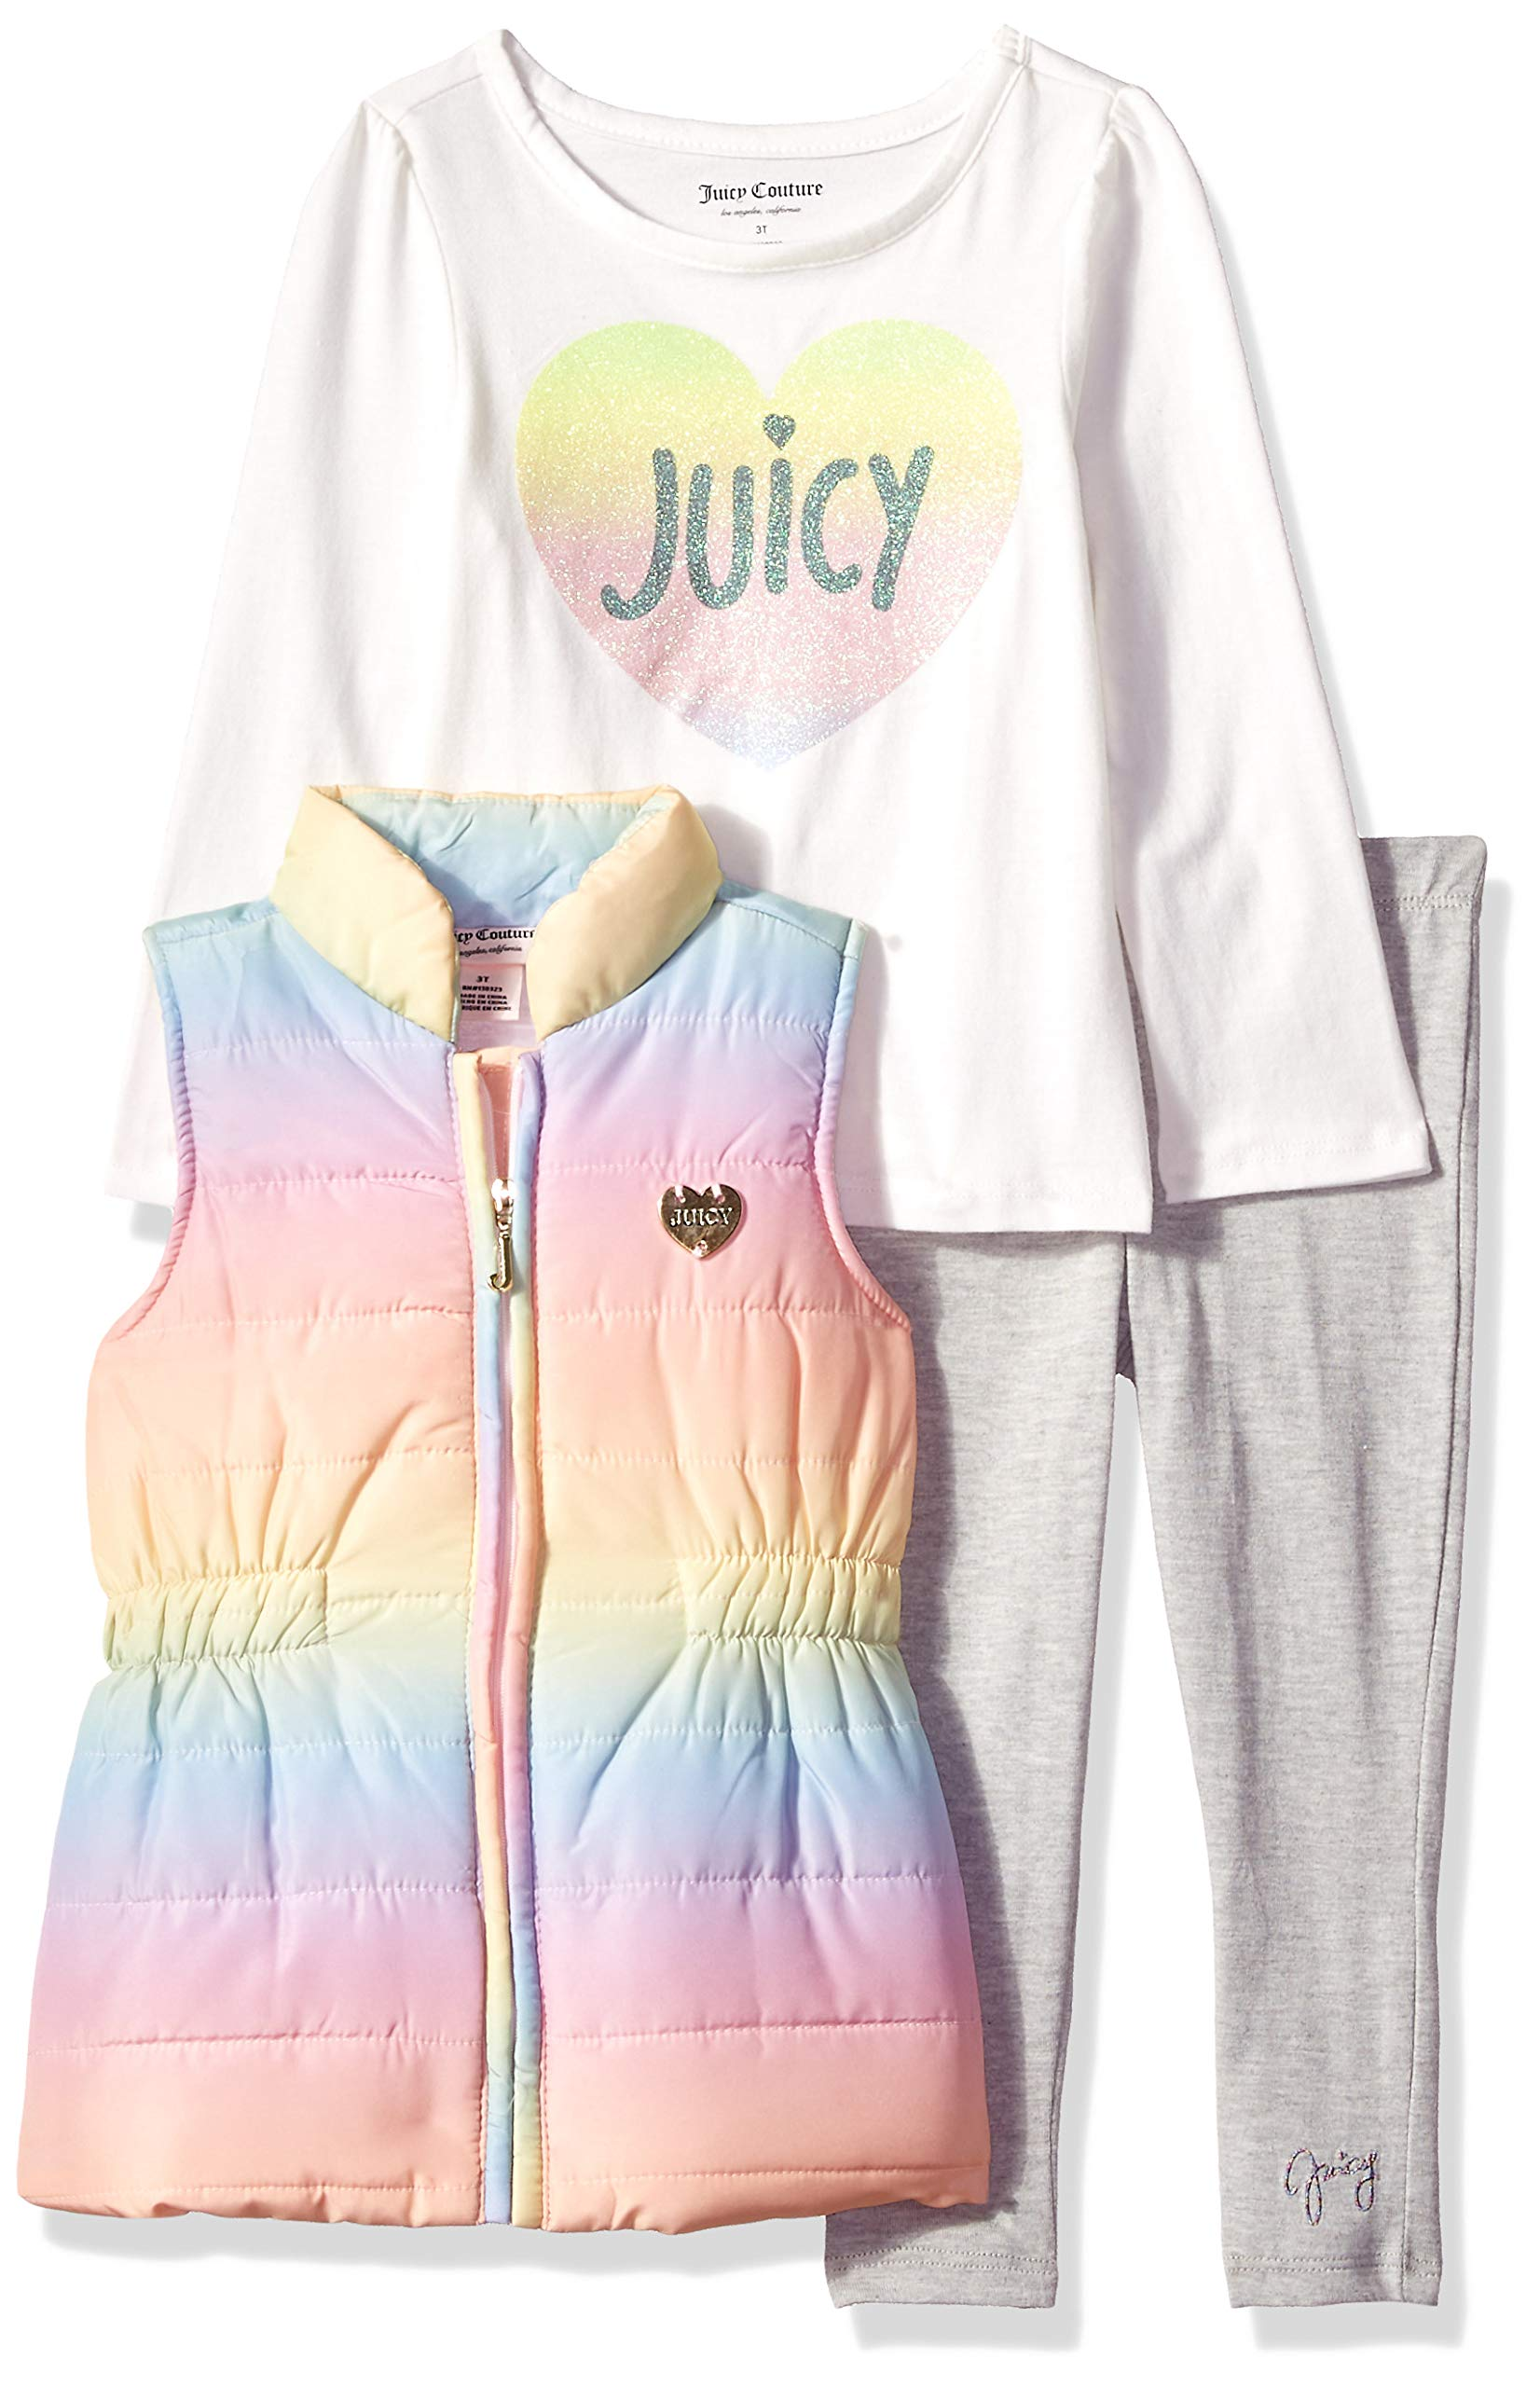 Juicy Couture Girls' Toddler 3 Pieces Puff Vest Set, Multi Color/Gray, 2T